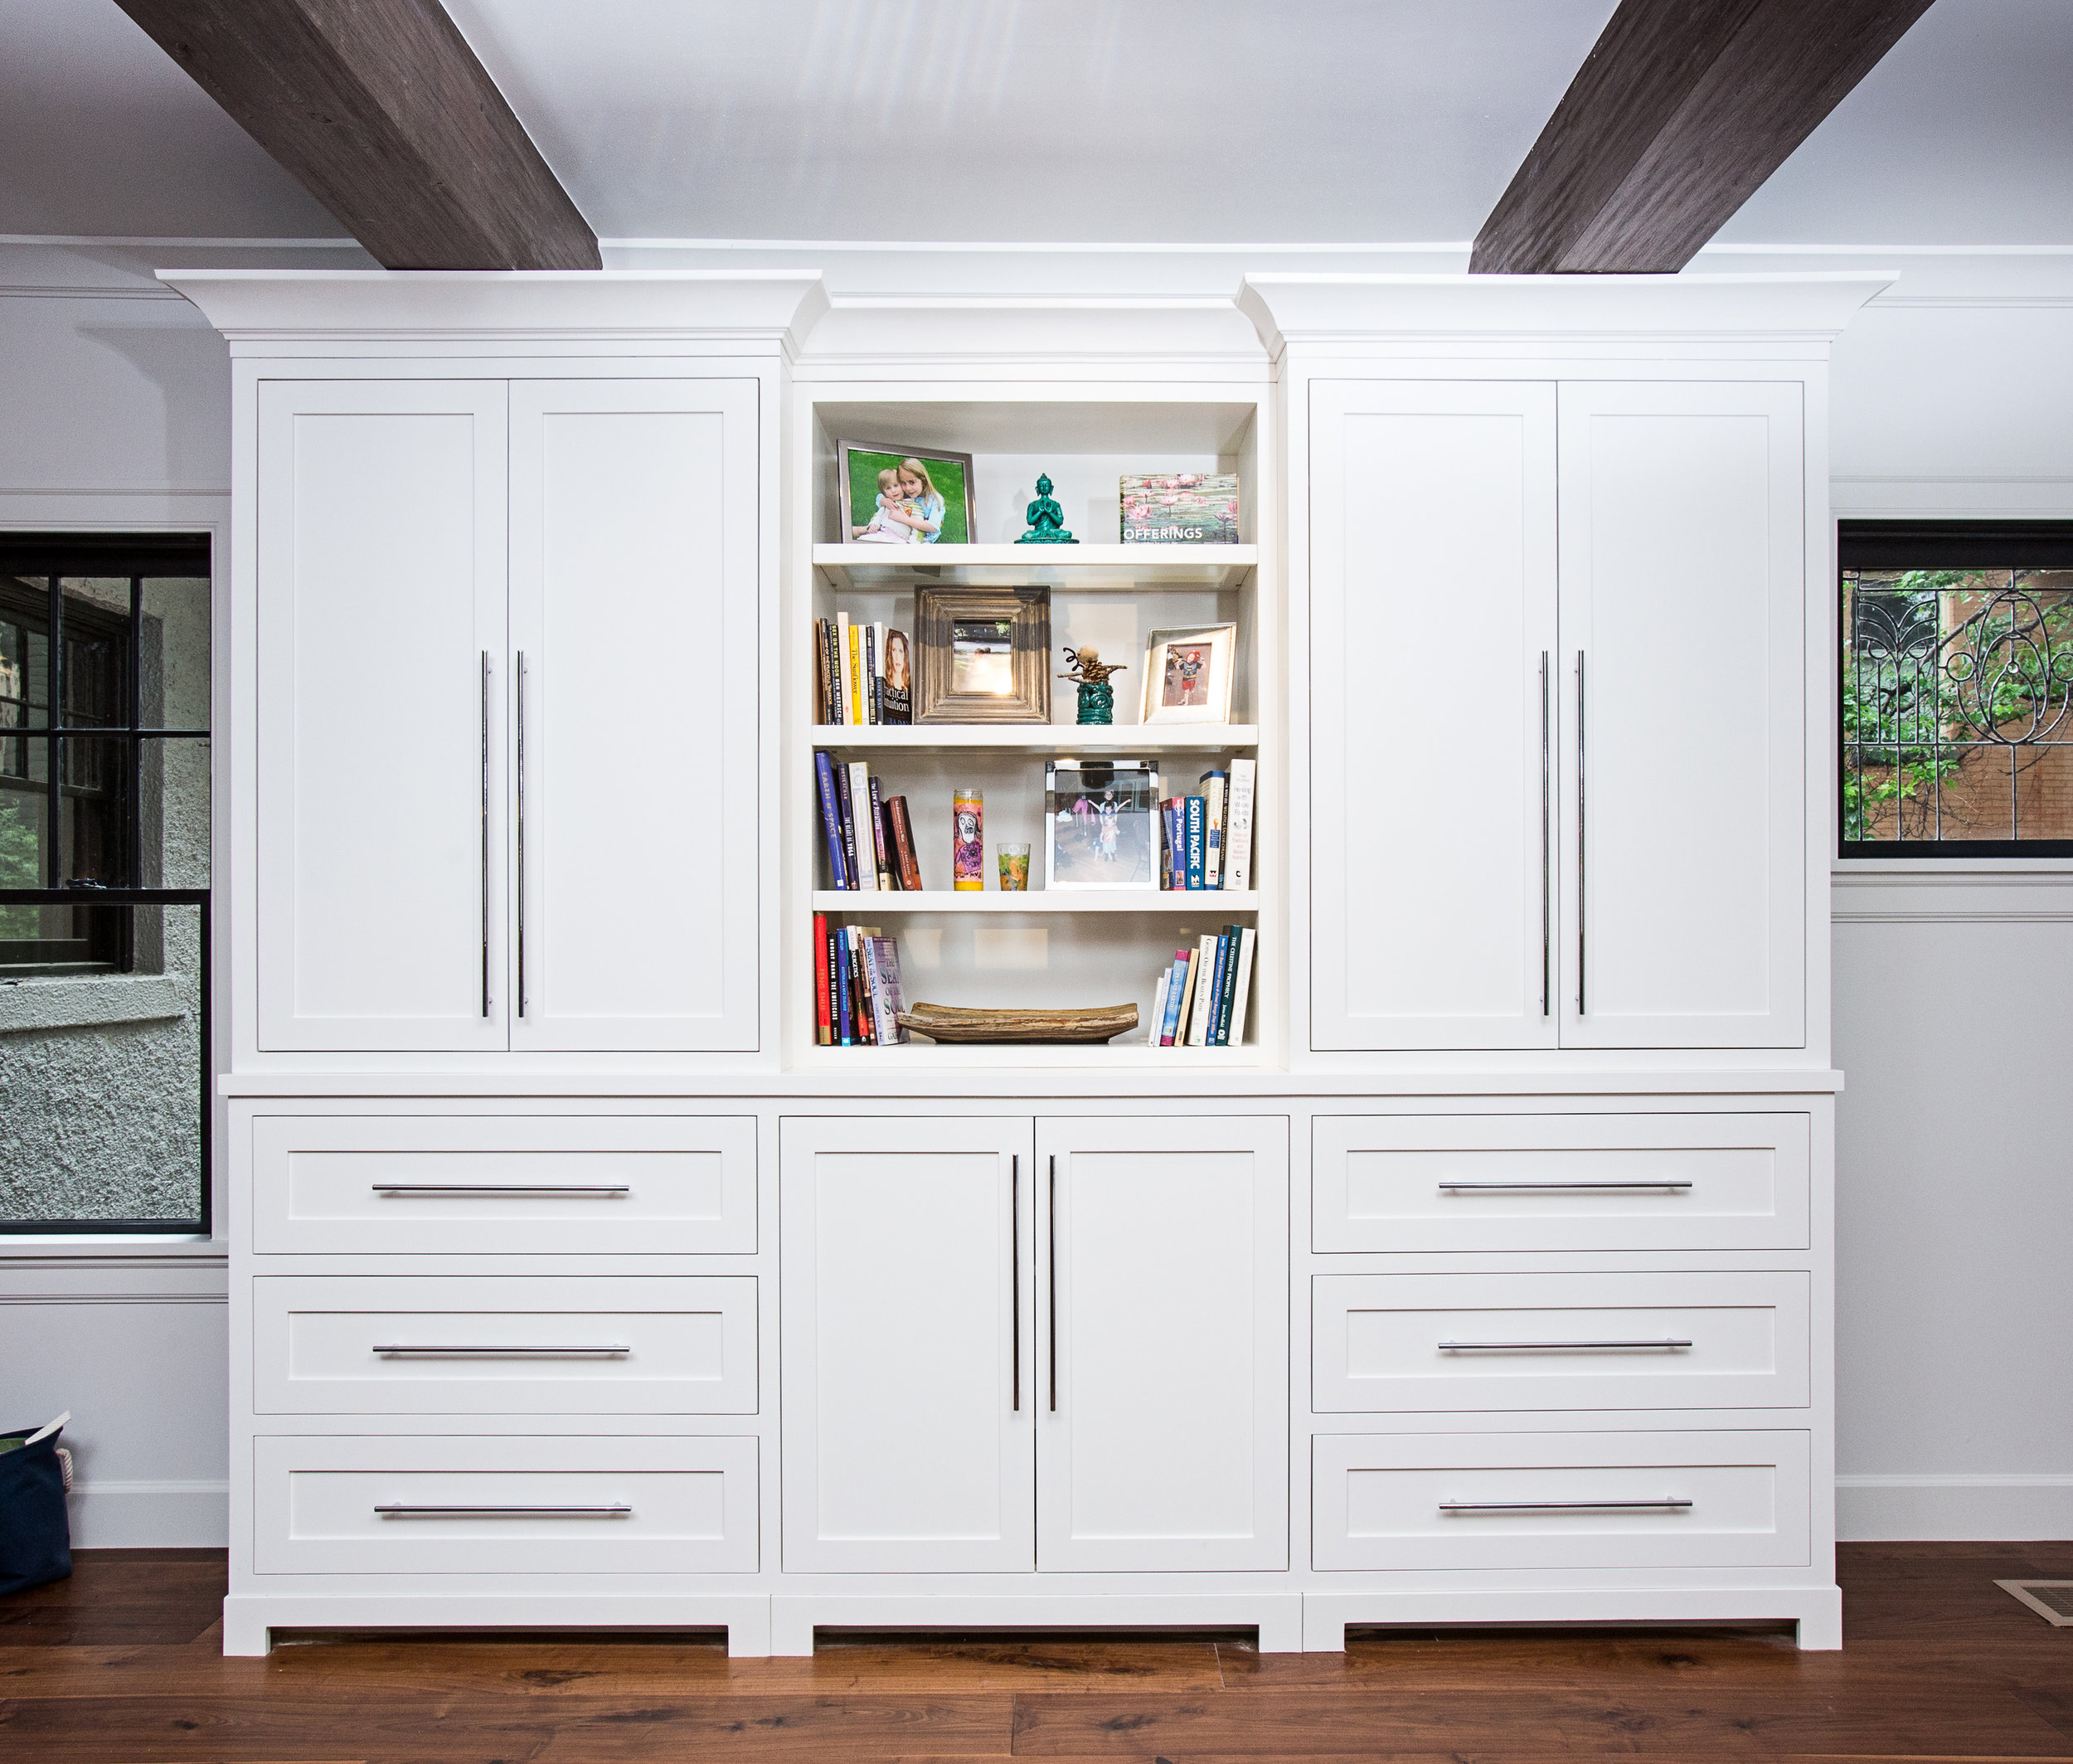 cabinetry 6.jpg